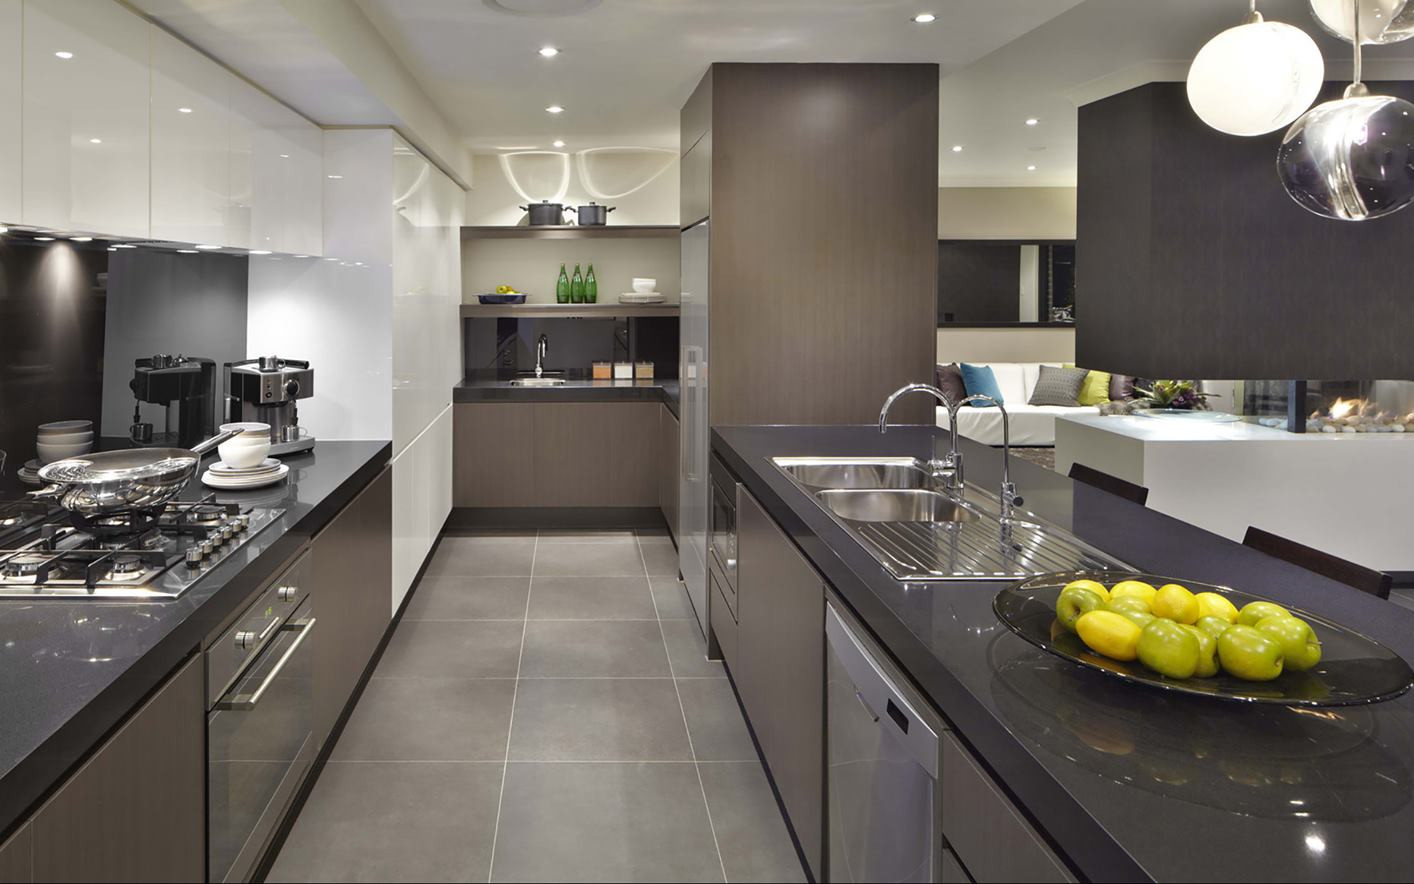 Kitchen - C grey - U grey and white - B